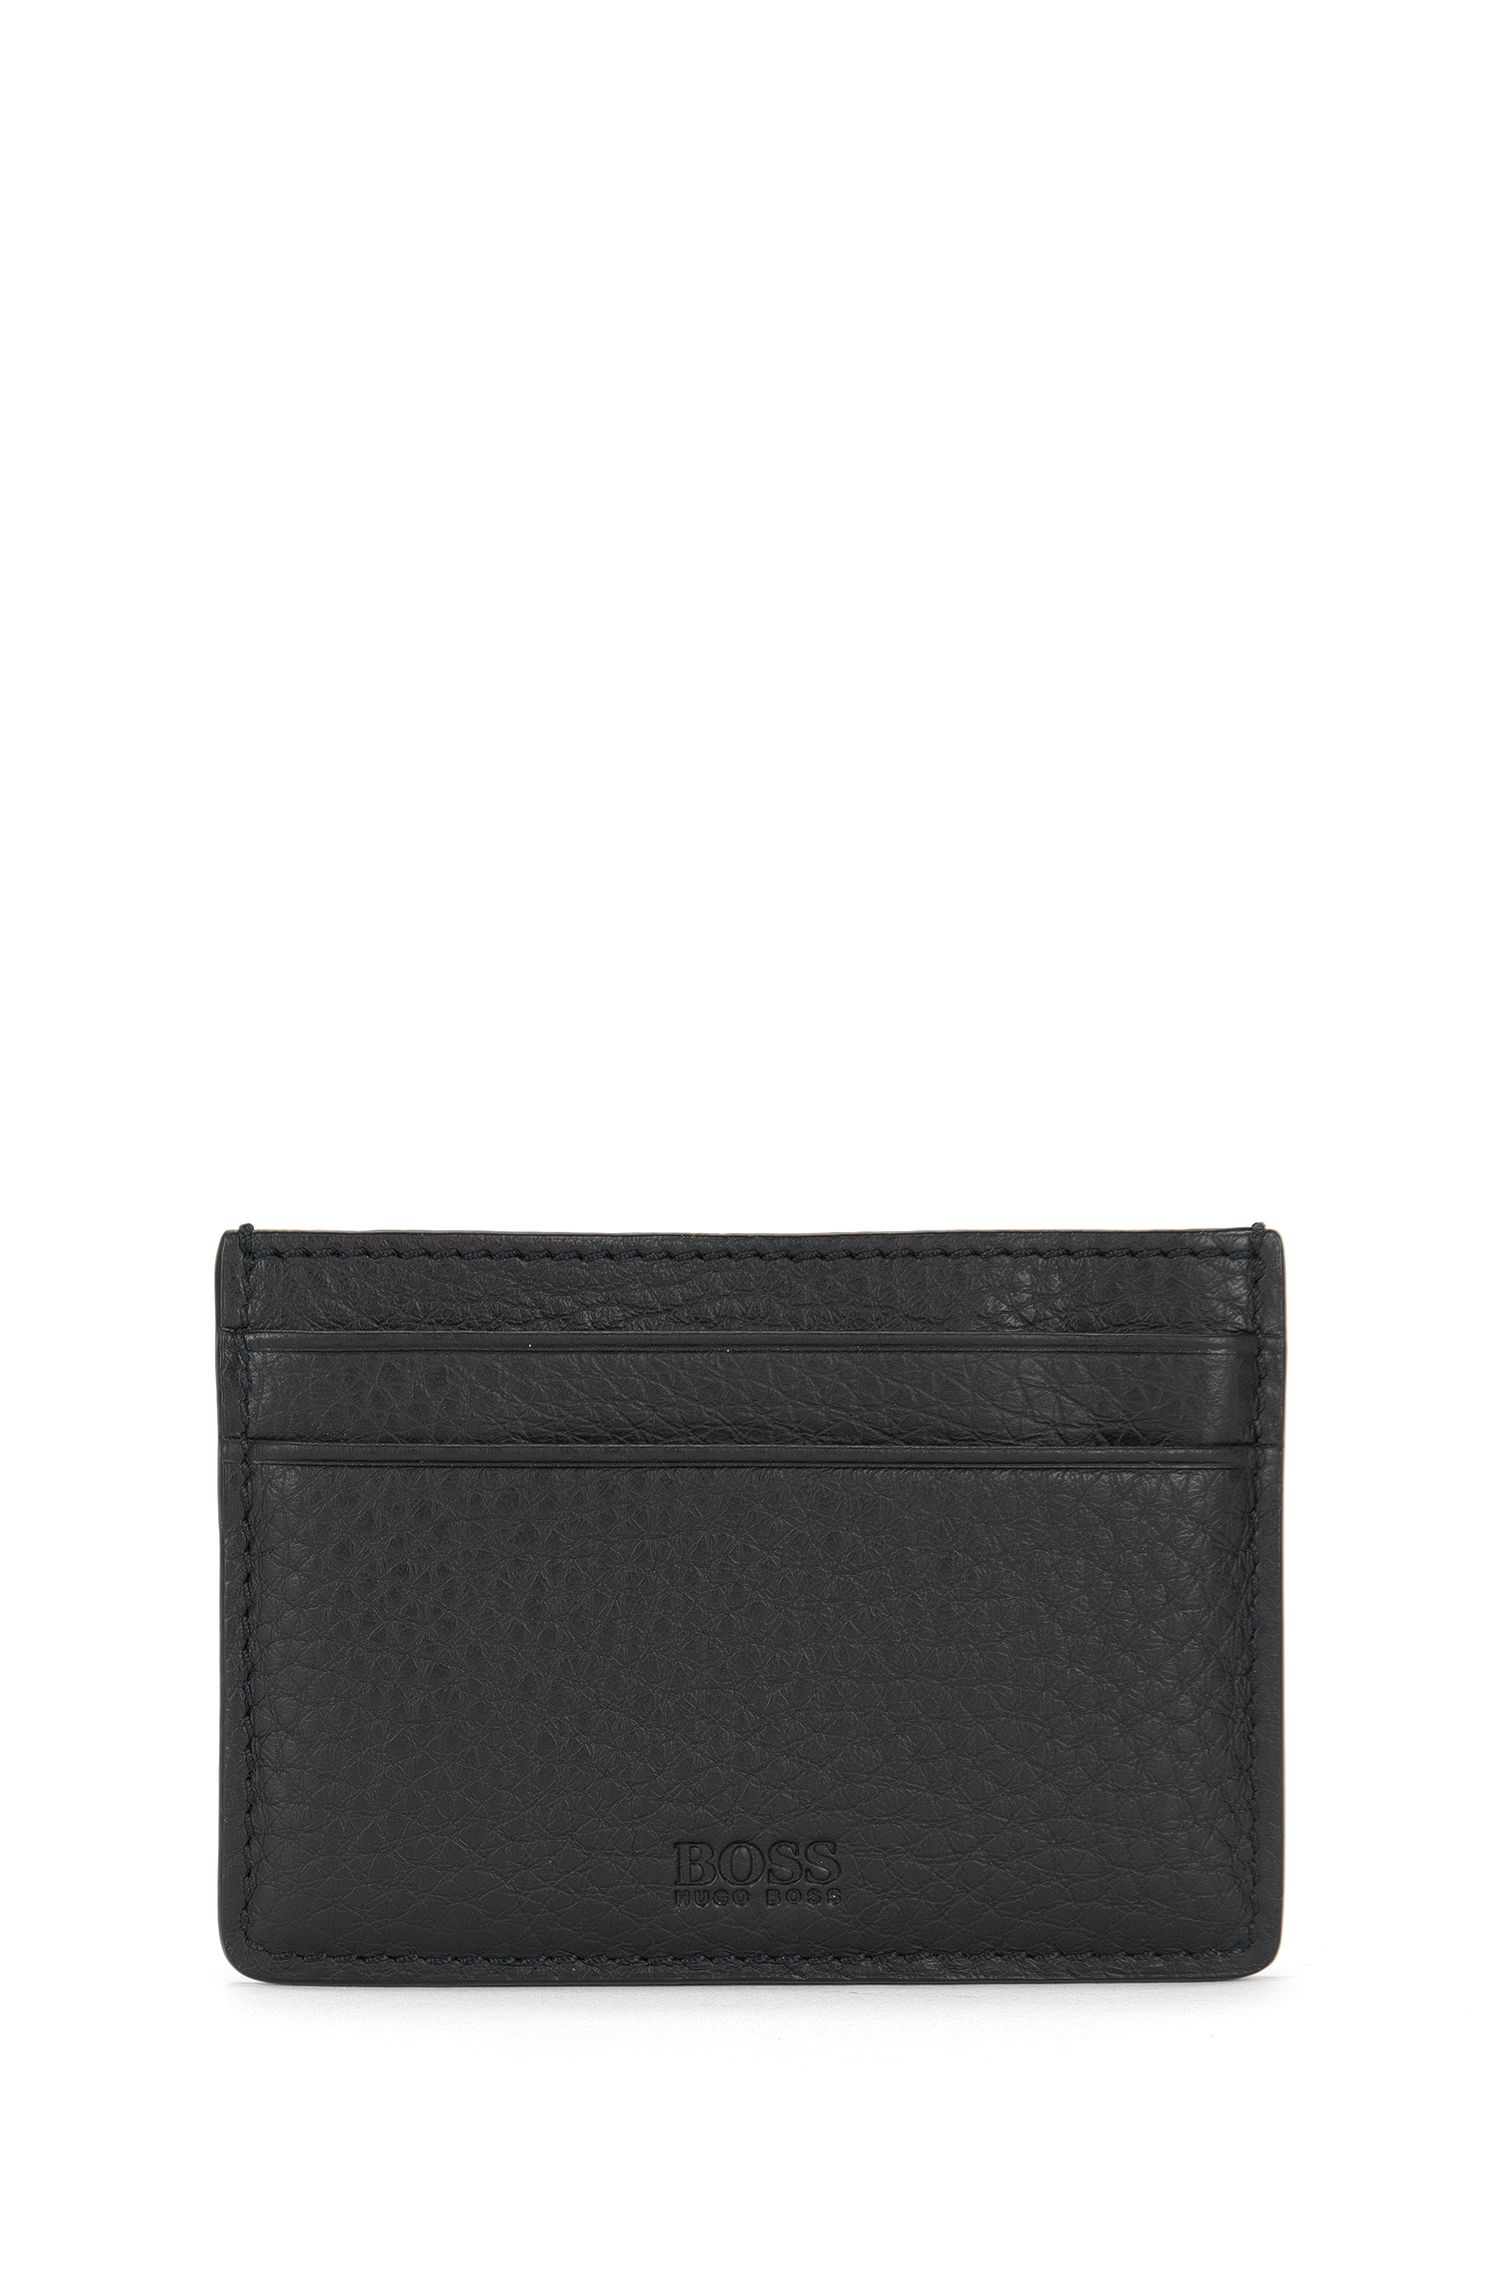 'Traveler Money Clip' | Leather Grained Card Case With Money Clip